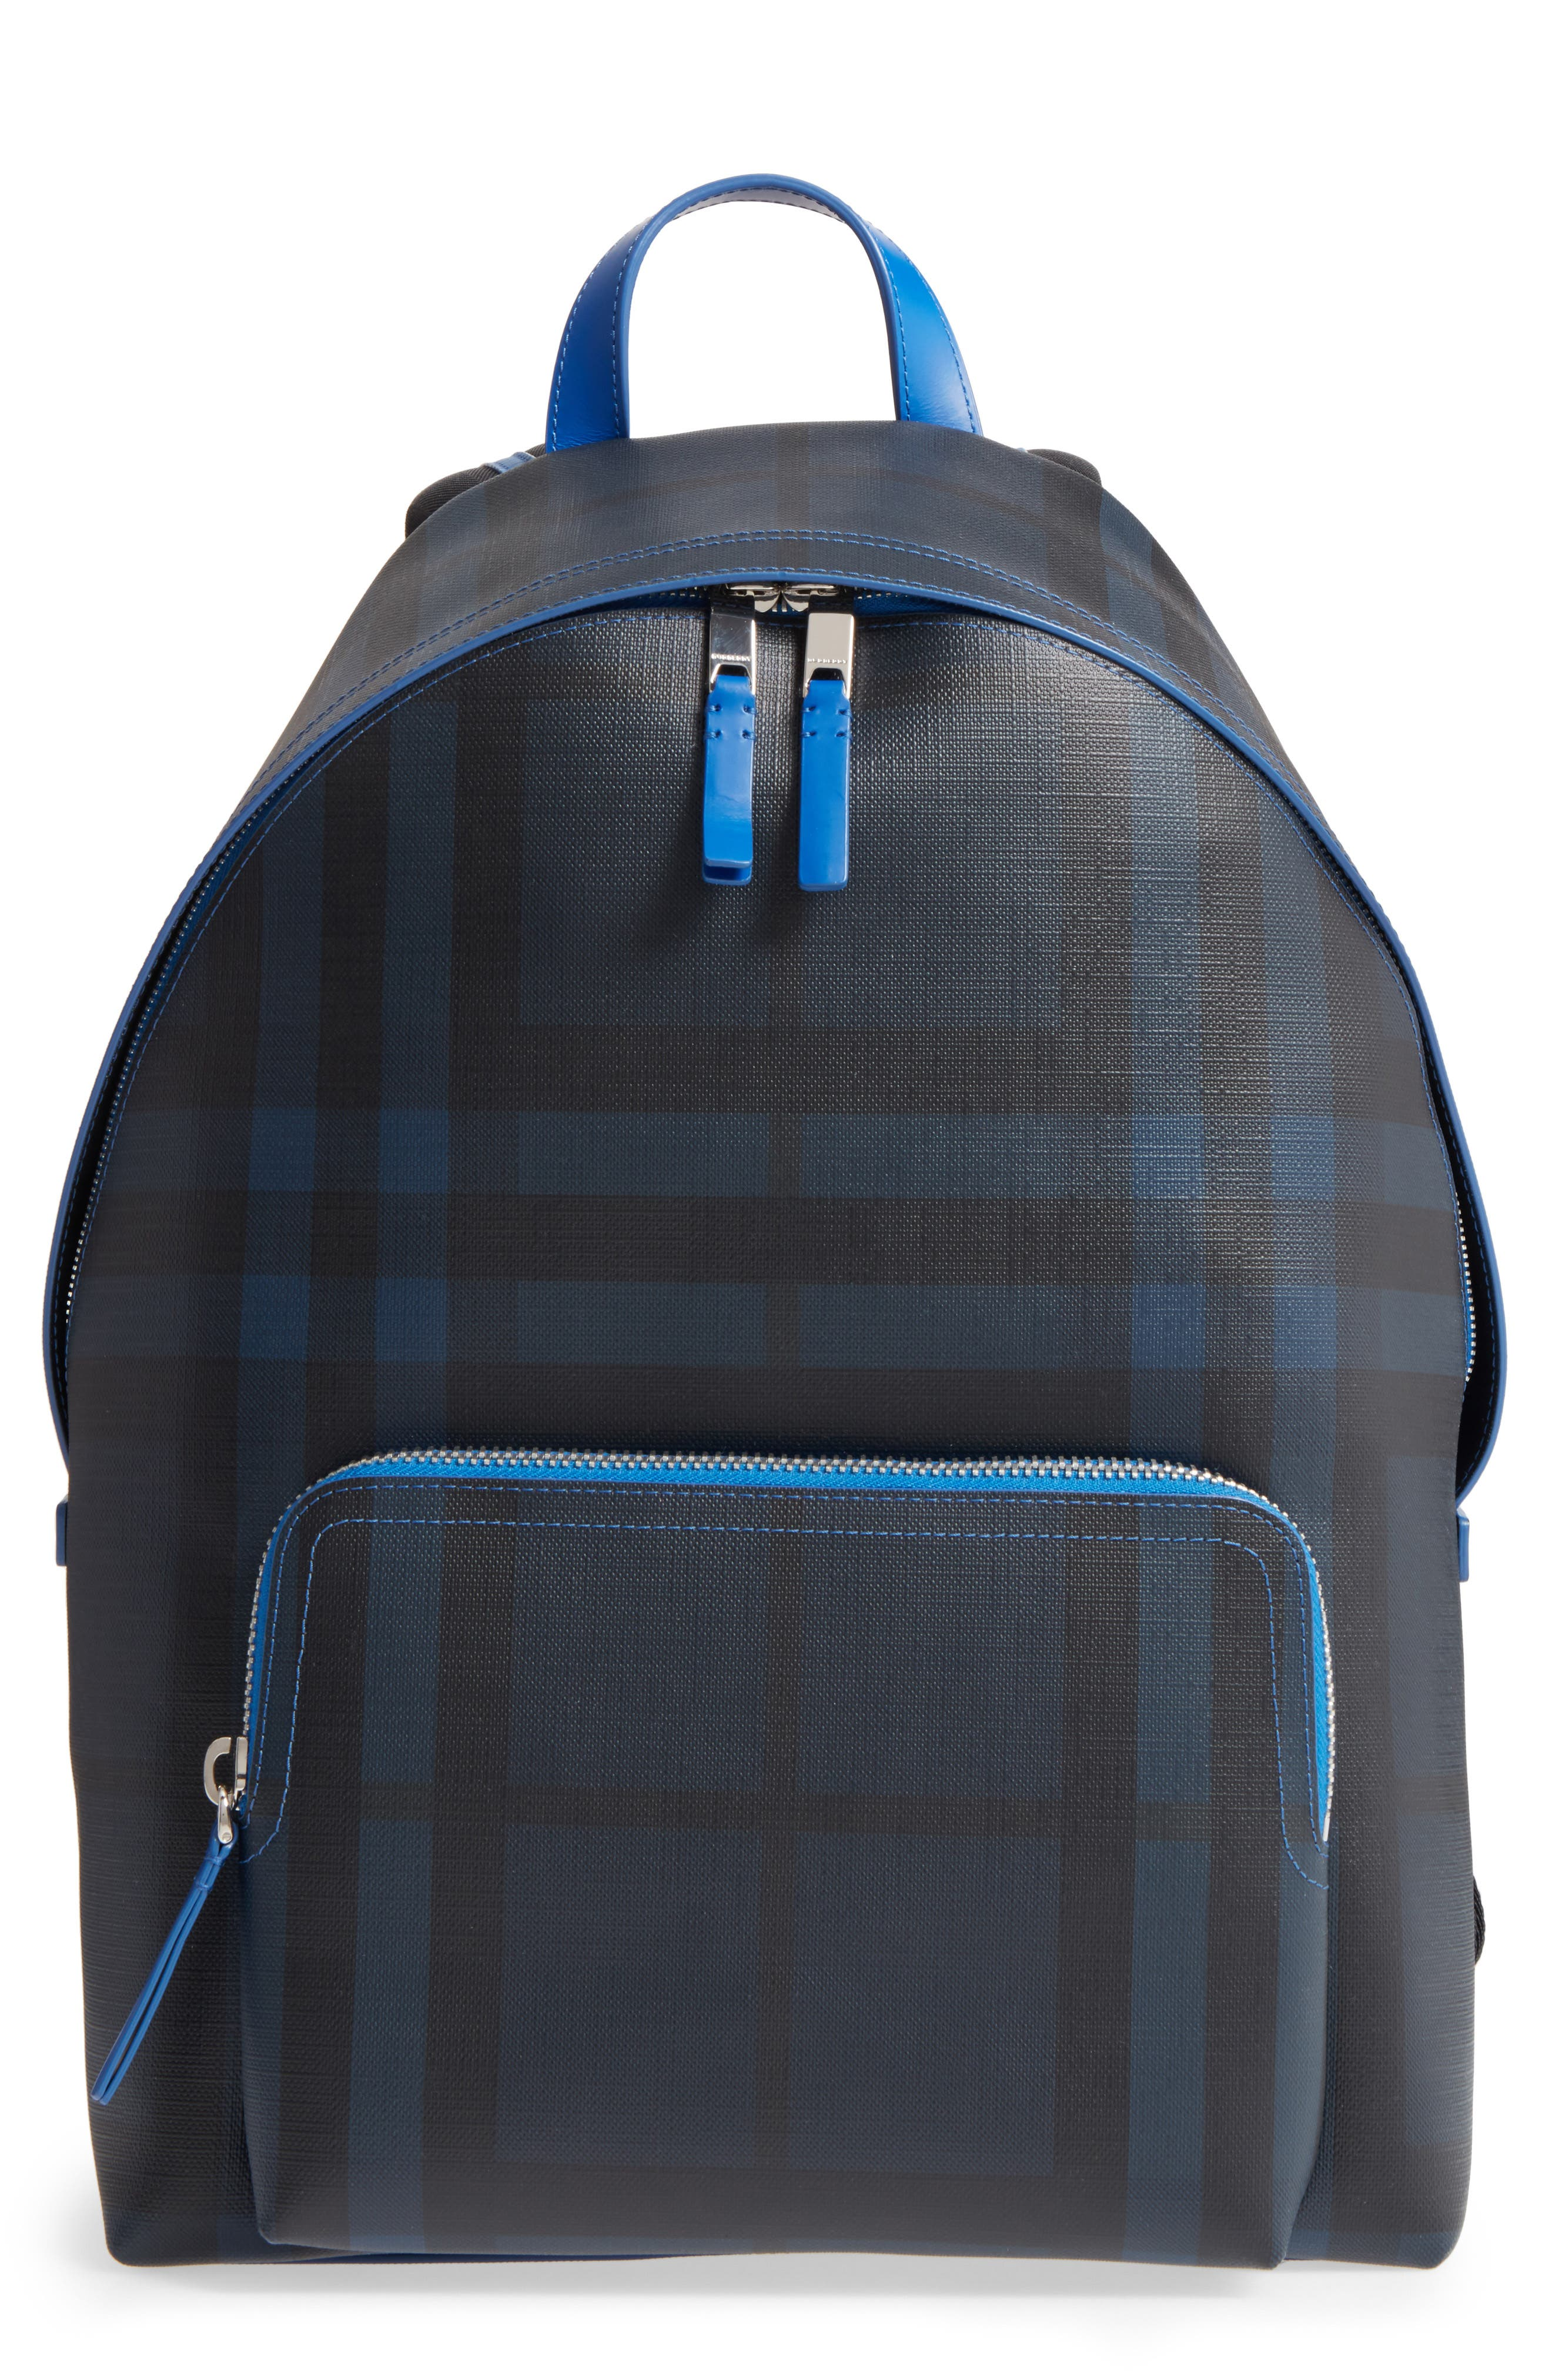 Alternate Image 1 Selected - Burberry Check Faux Leather Backpack